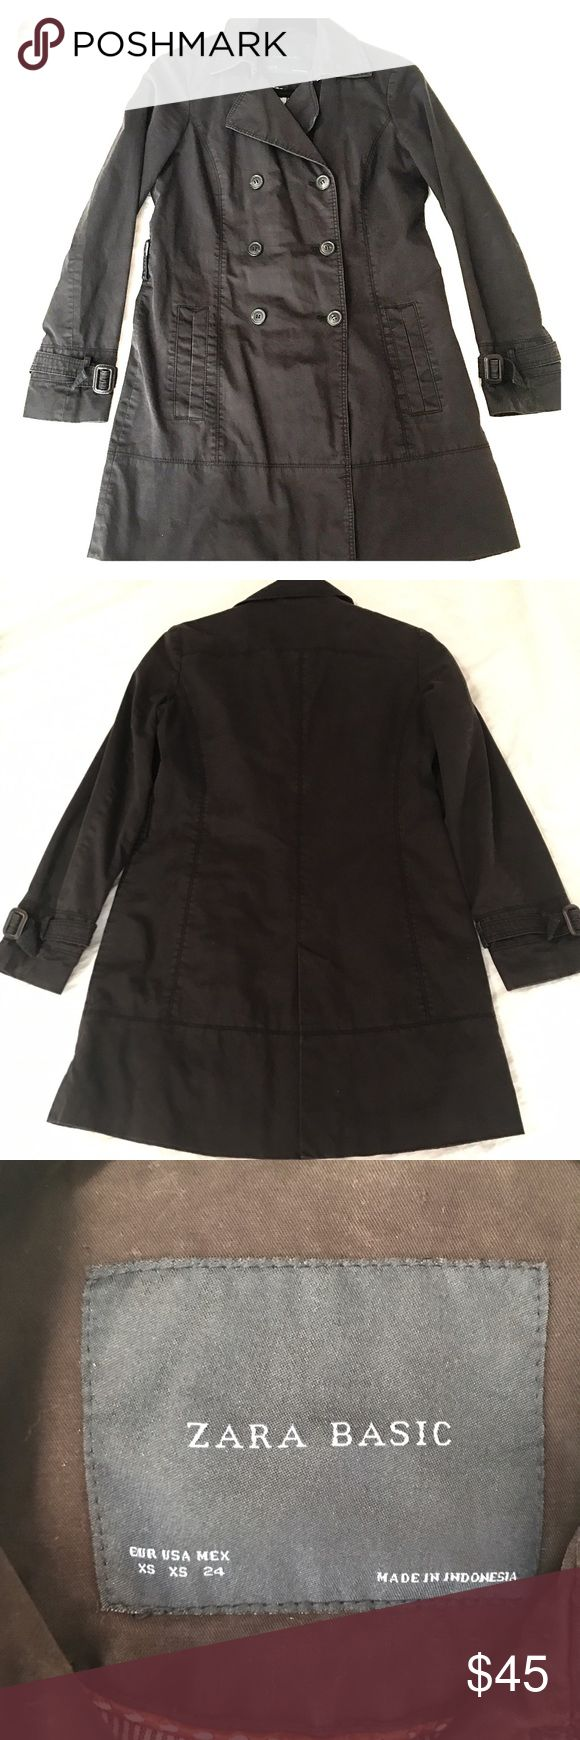 Zara Women's Lightweight Trench Coat Worn but in great condition still! No stains, rips or damage. Super lightweight and classy. The fabric is soft and durable. It's an extra small, but I'm a size 4 and it fits good. Zara Jackets & Coats Trench Coats